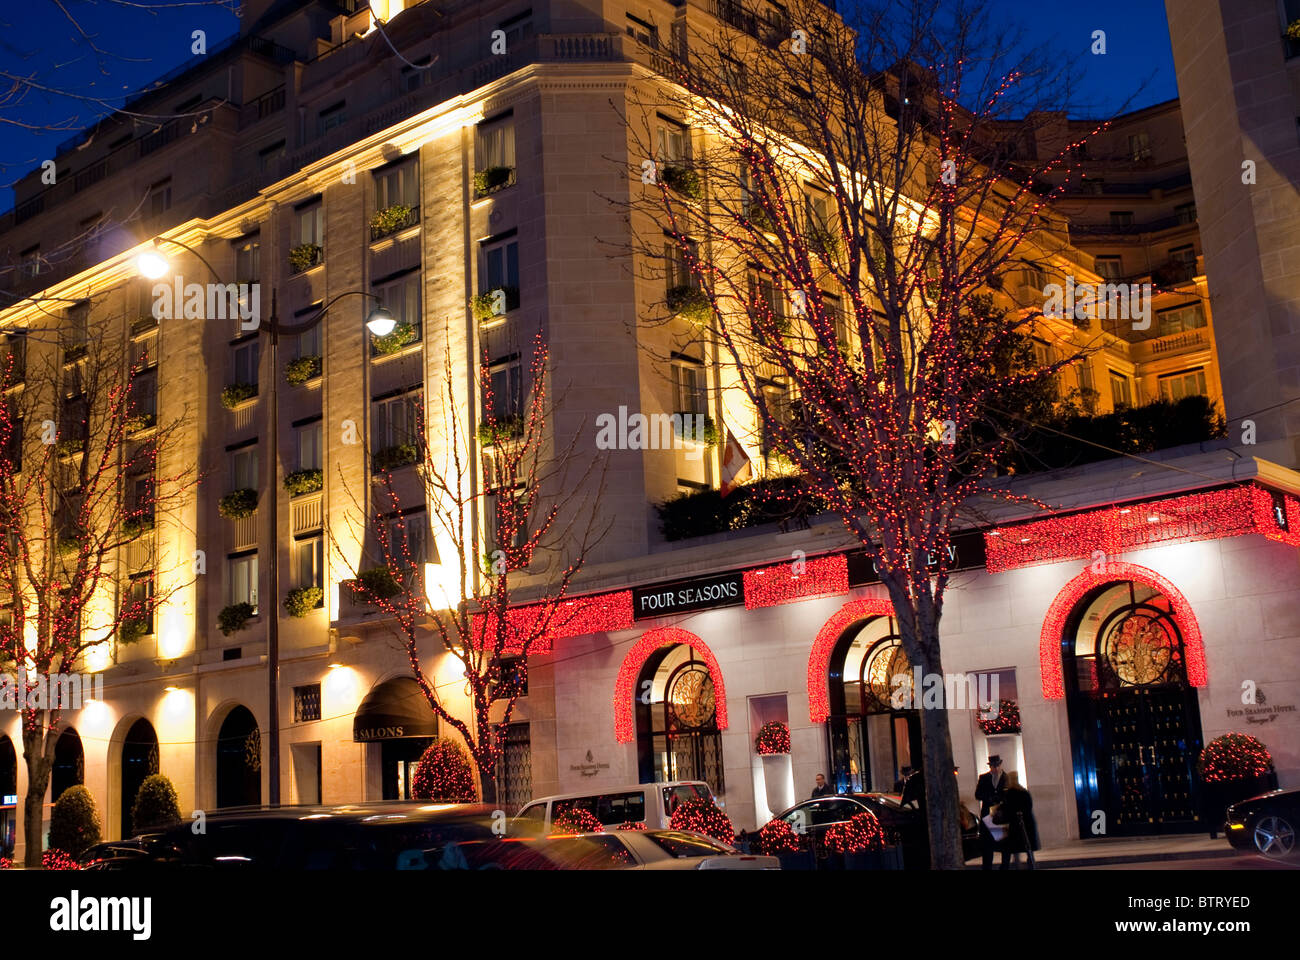 Paris france luxury hotel george v four seasons for Luxury hotels paris france